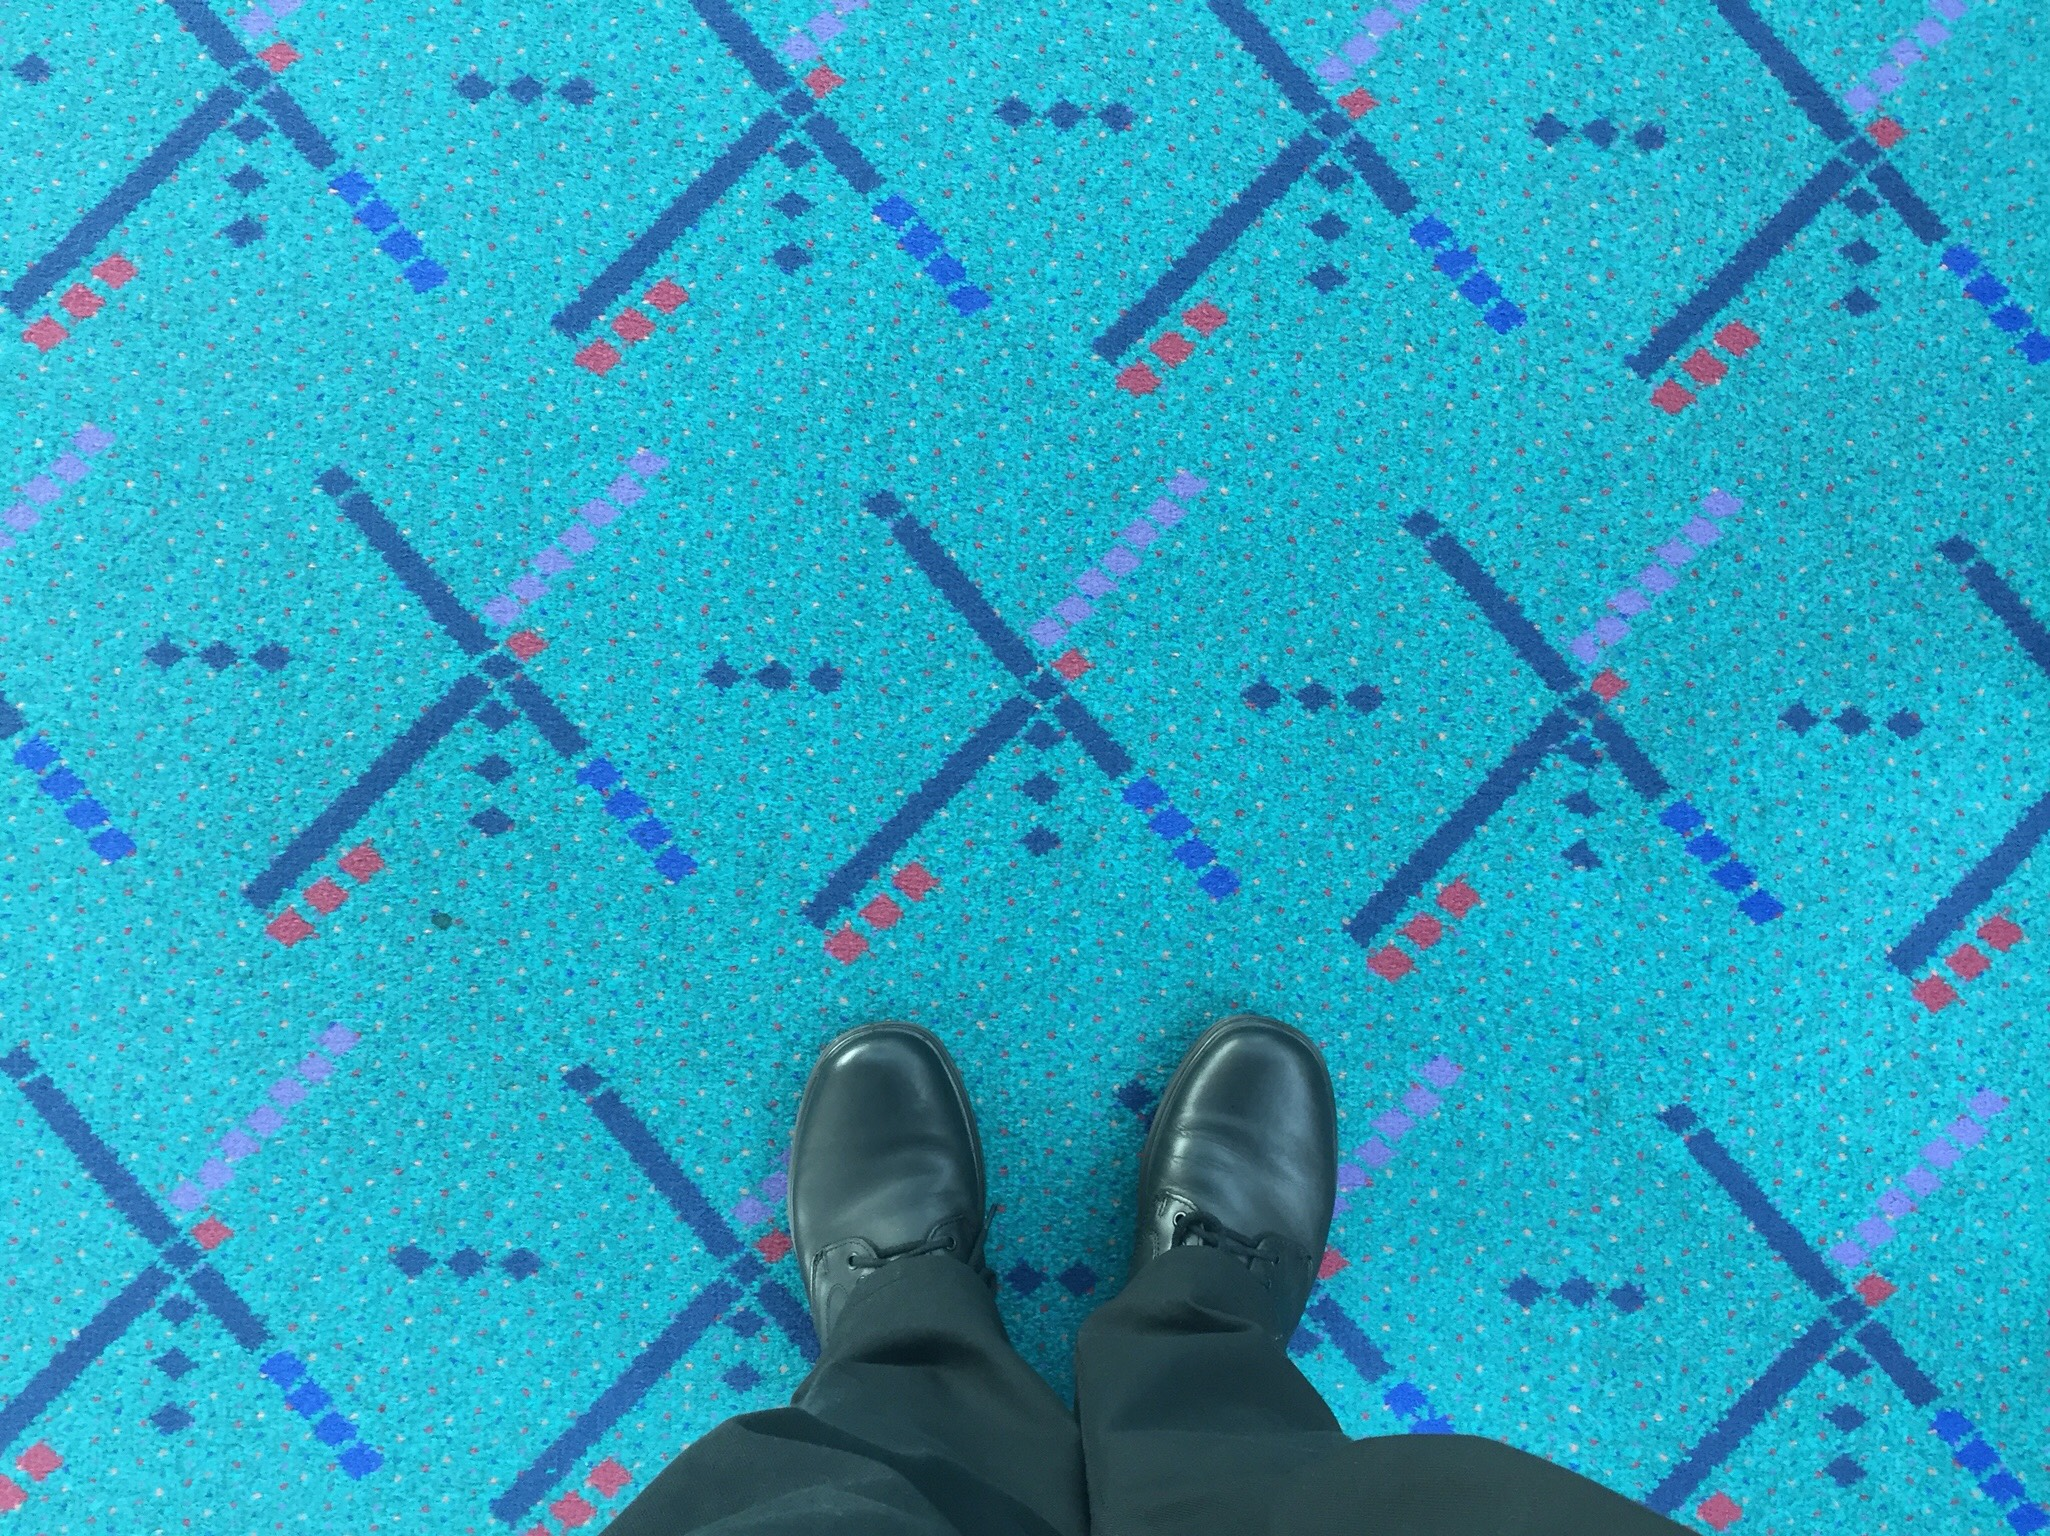 Portland Airport - PDX's original carpet design